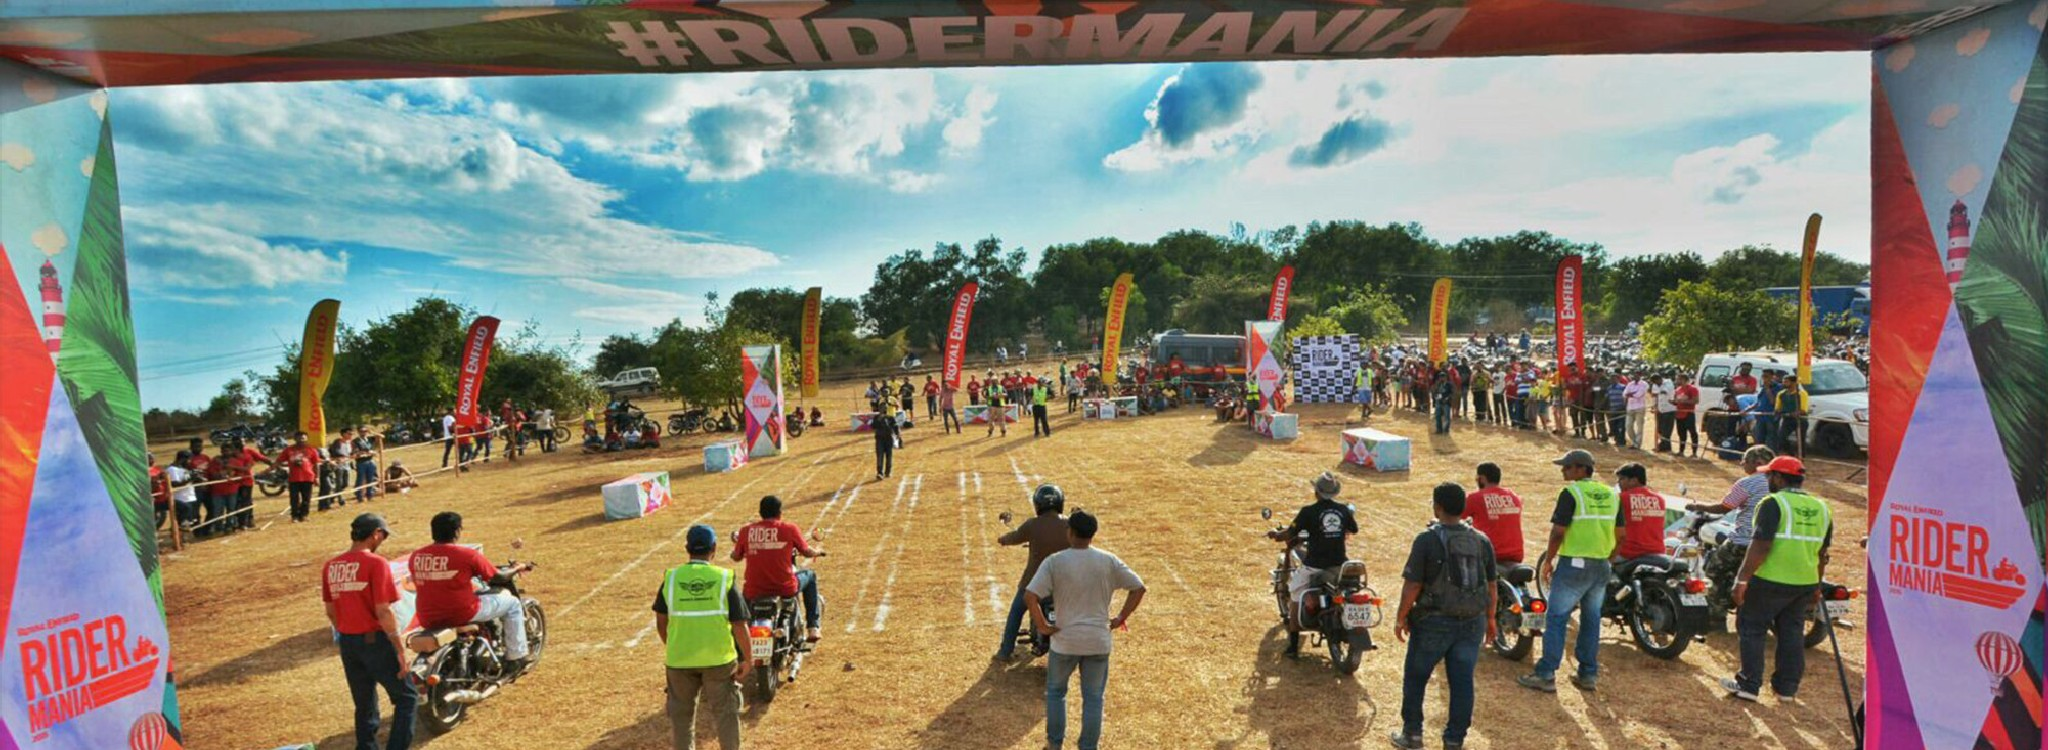 Kerala to Goa and Rider Mania!